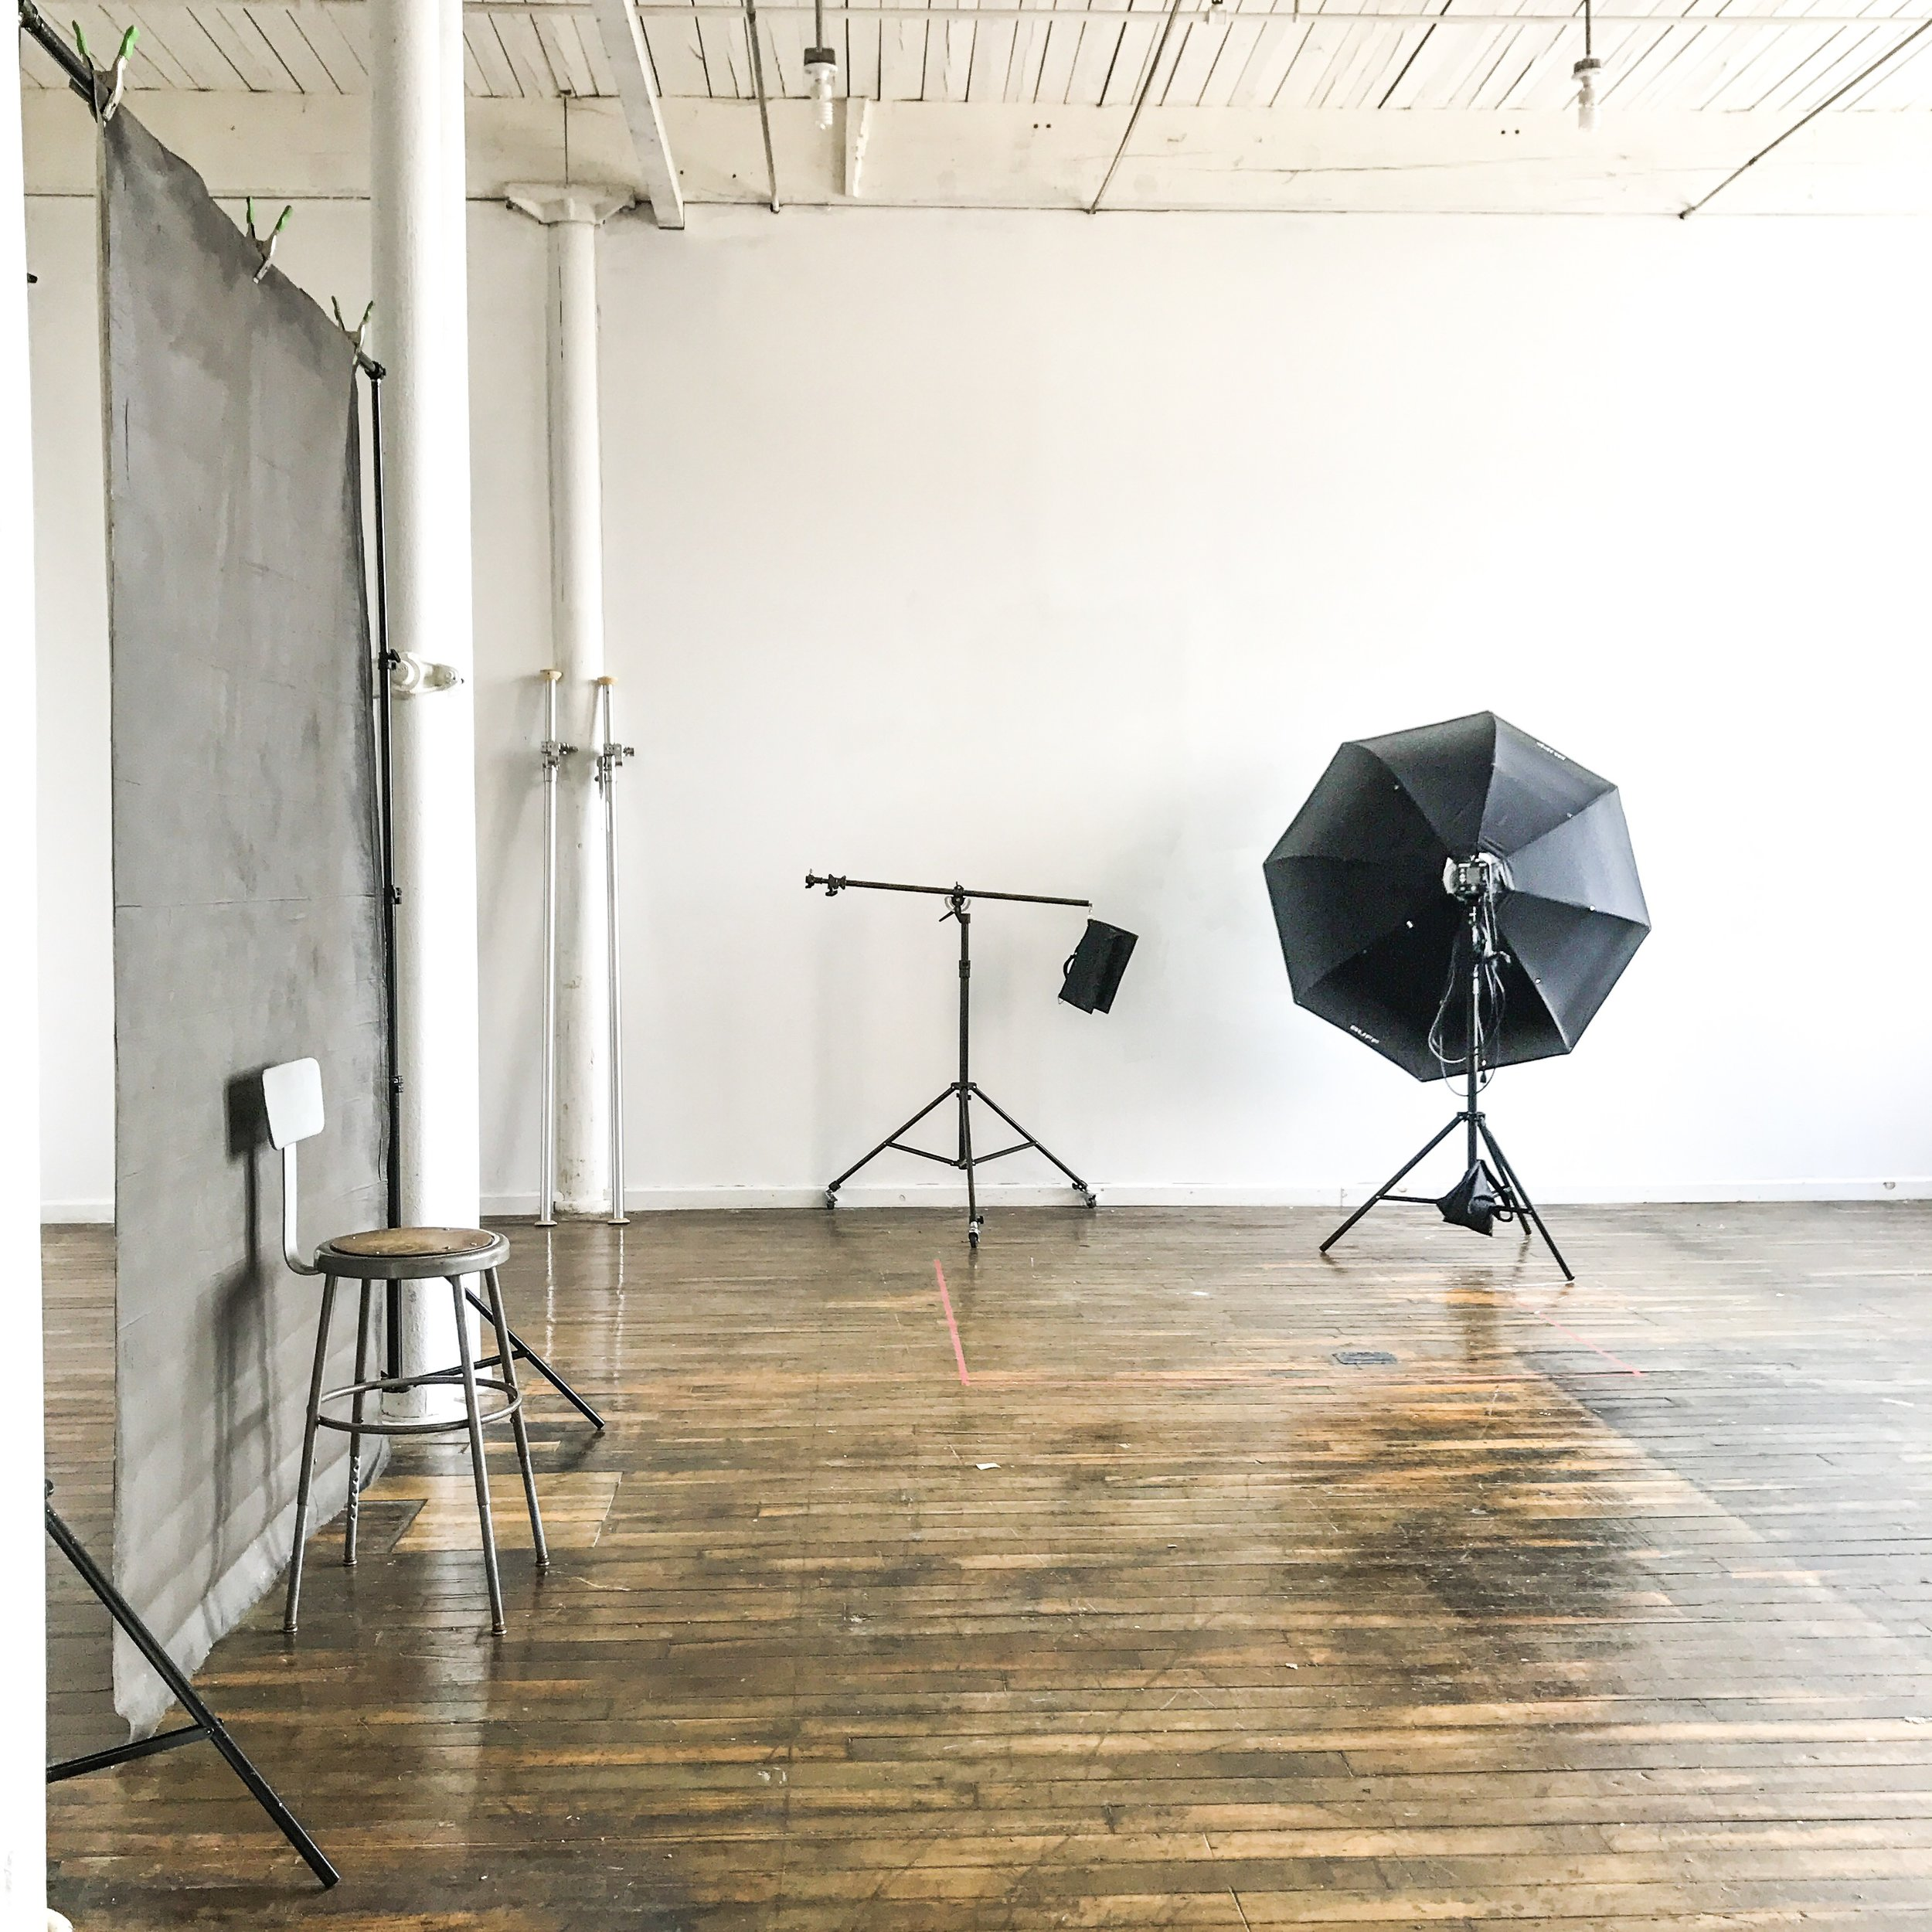 studio - 1000 sqft, natural light, minimal design, highly functional.